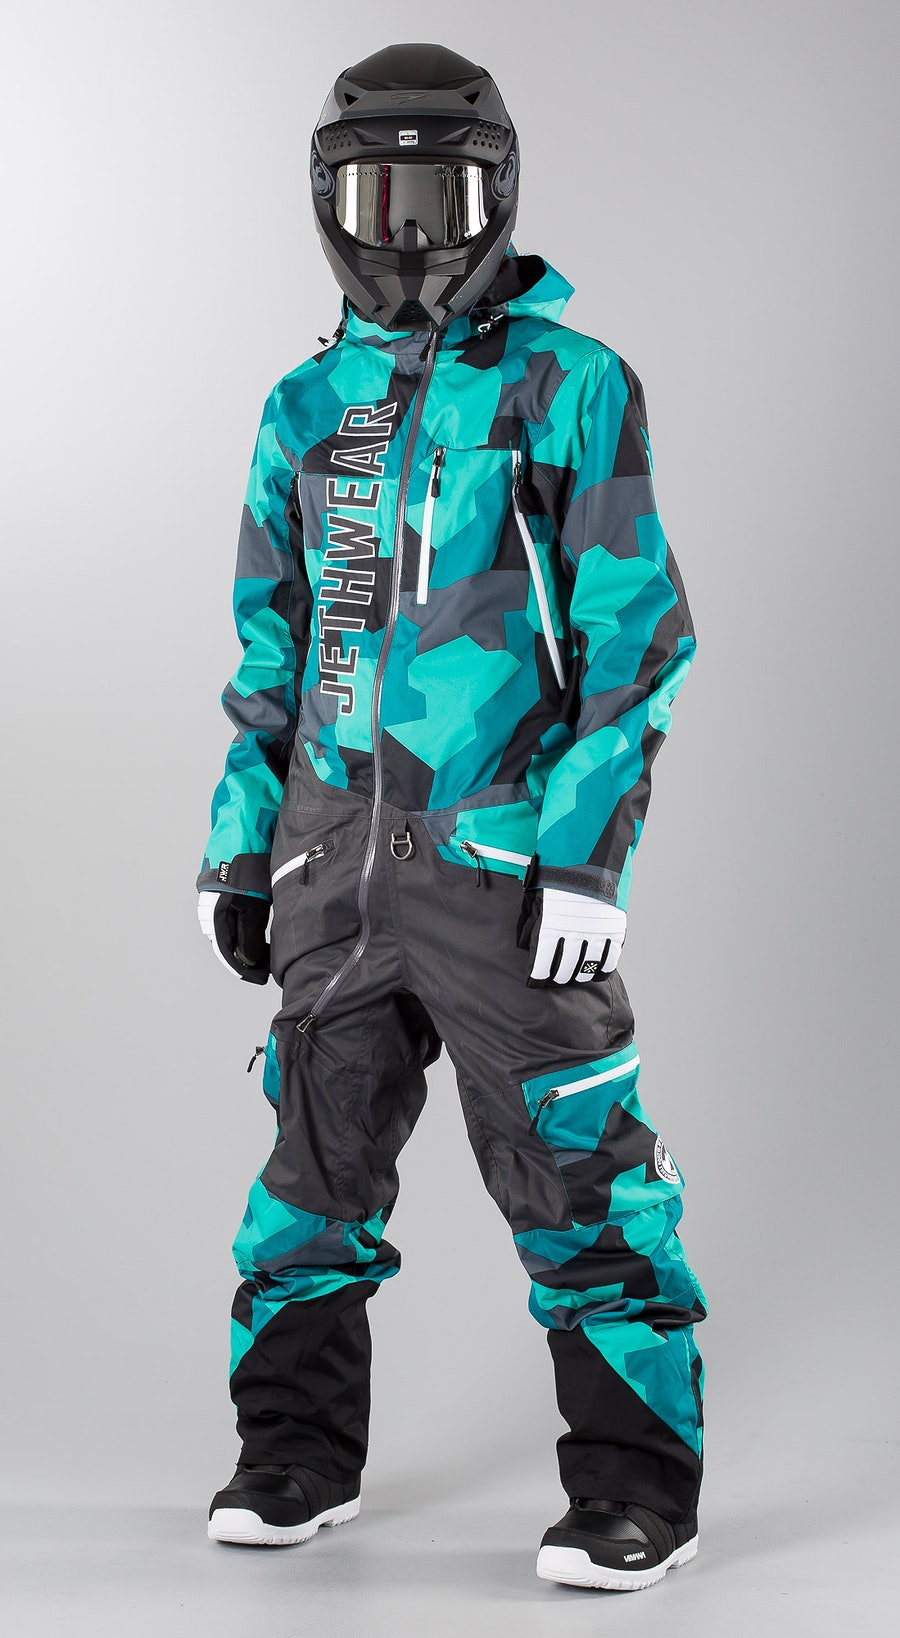 Jethwear The One  Teal Camo Snowmobile clothing Multi